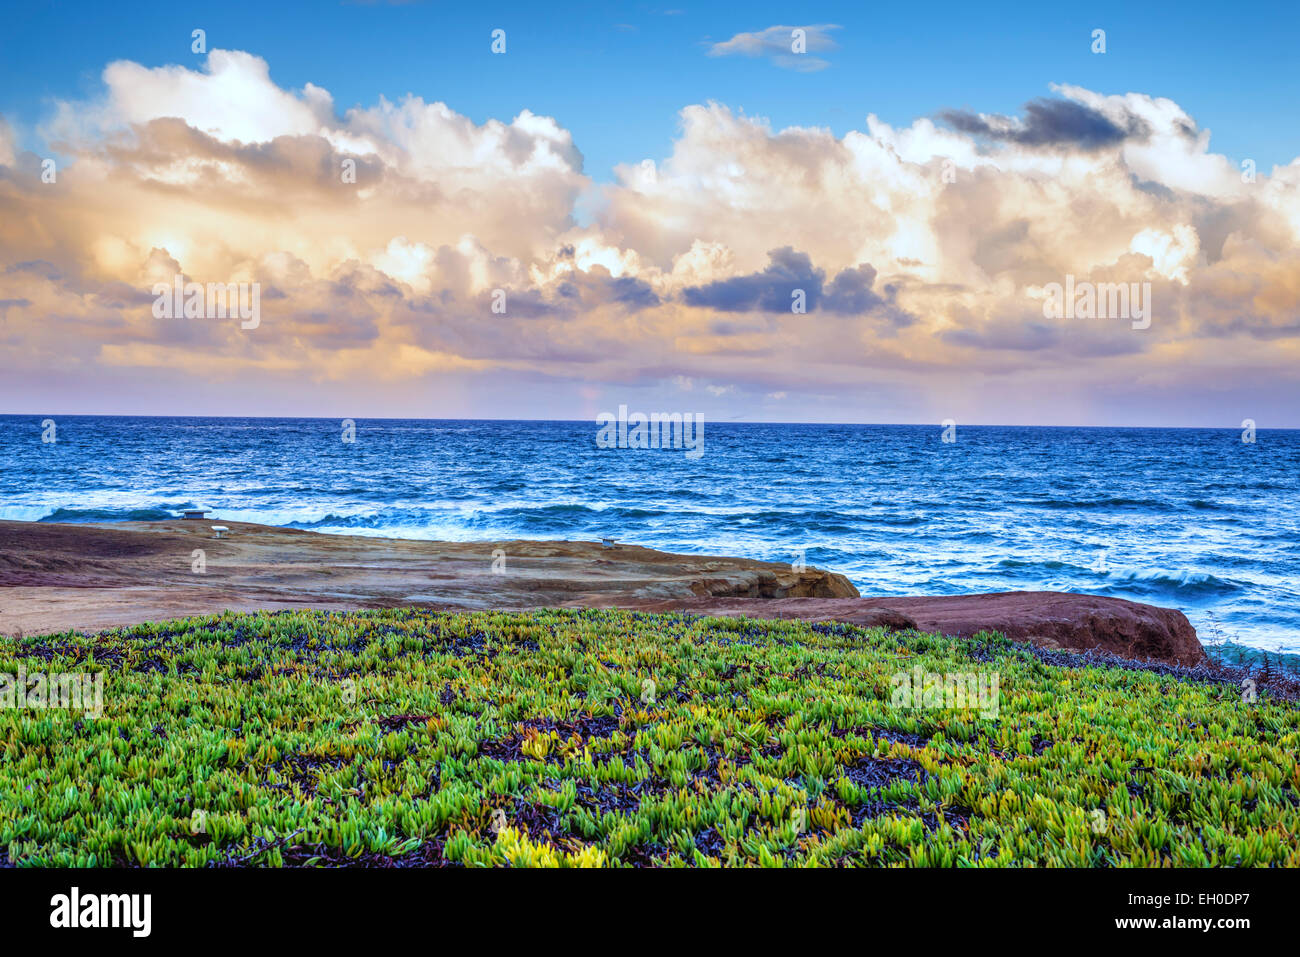 View of clouds over the Pacific Ocean from a viewpoint above Sunset Cliffs Natural Park, California, United States. Stock Photo